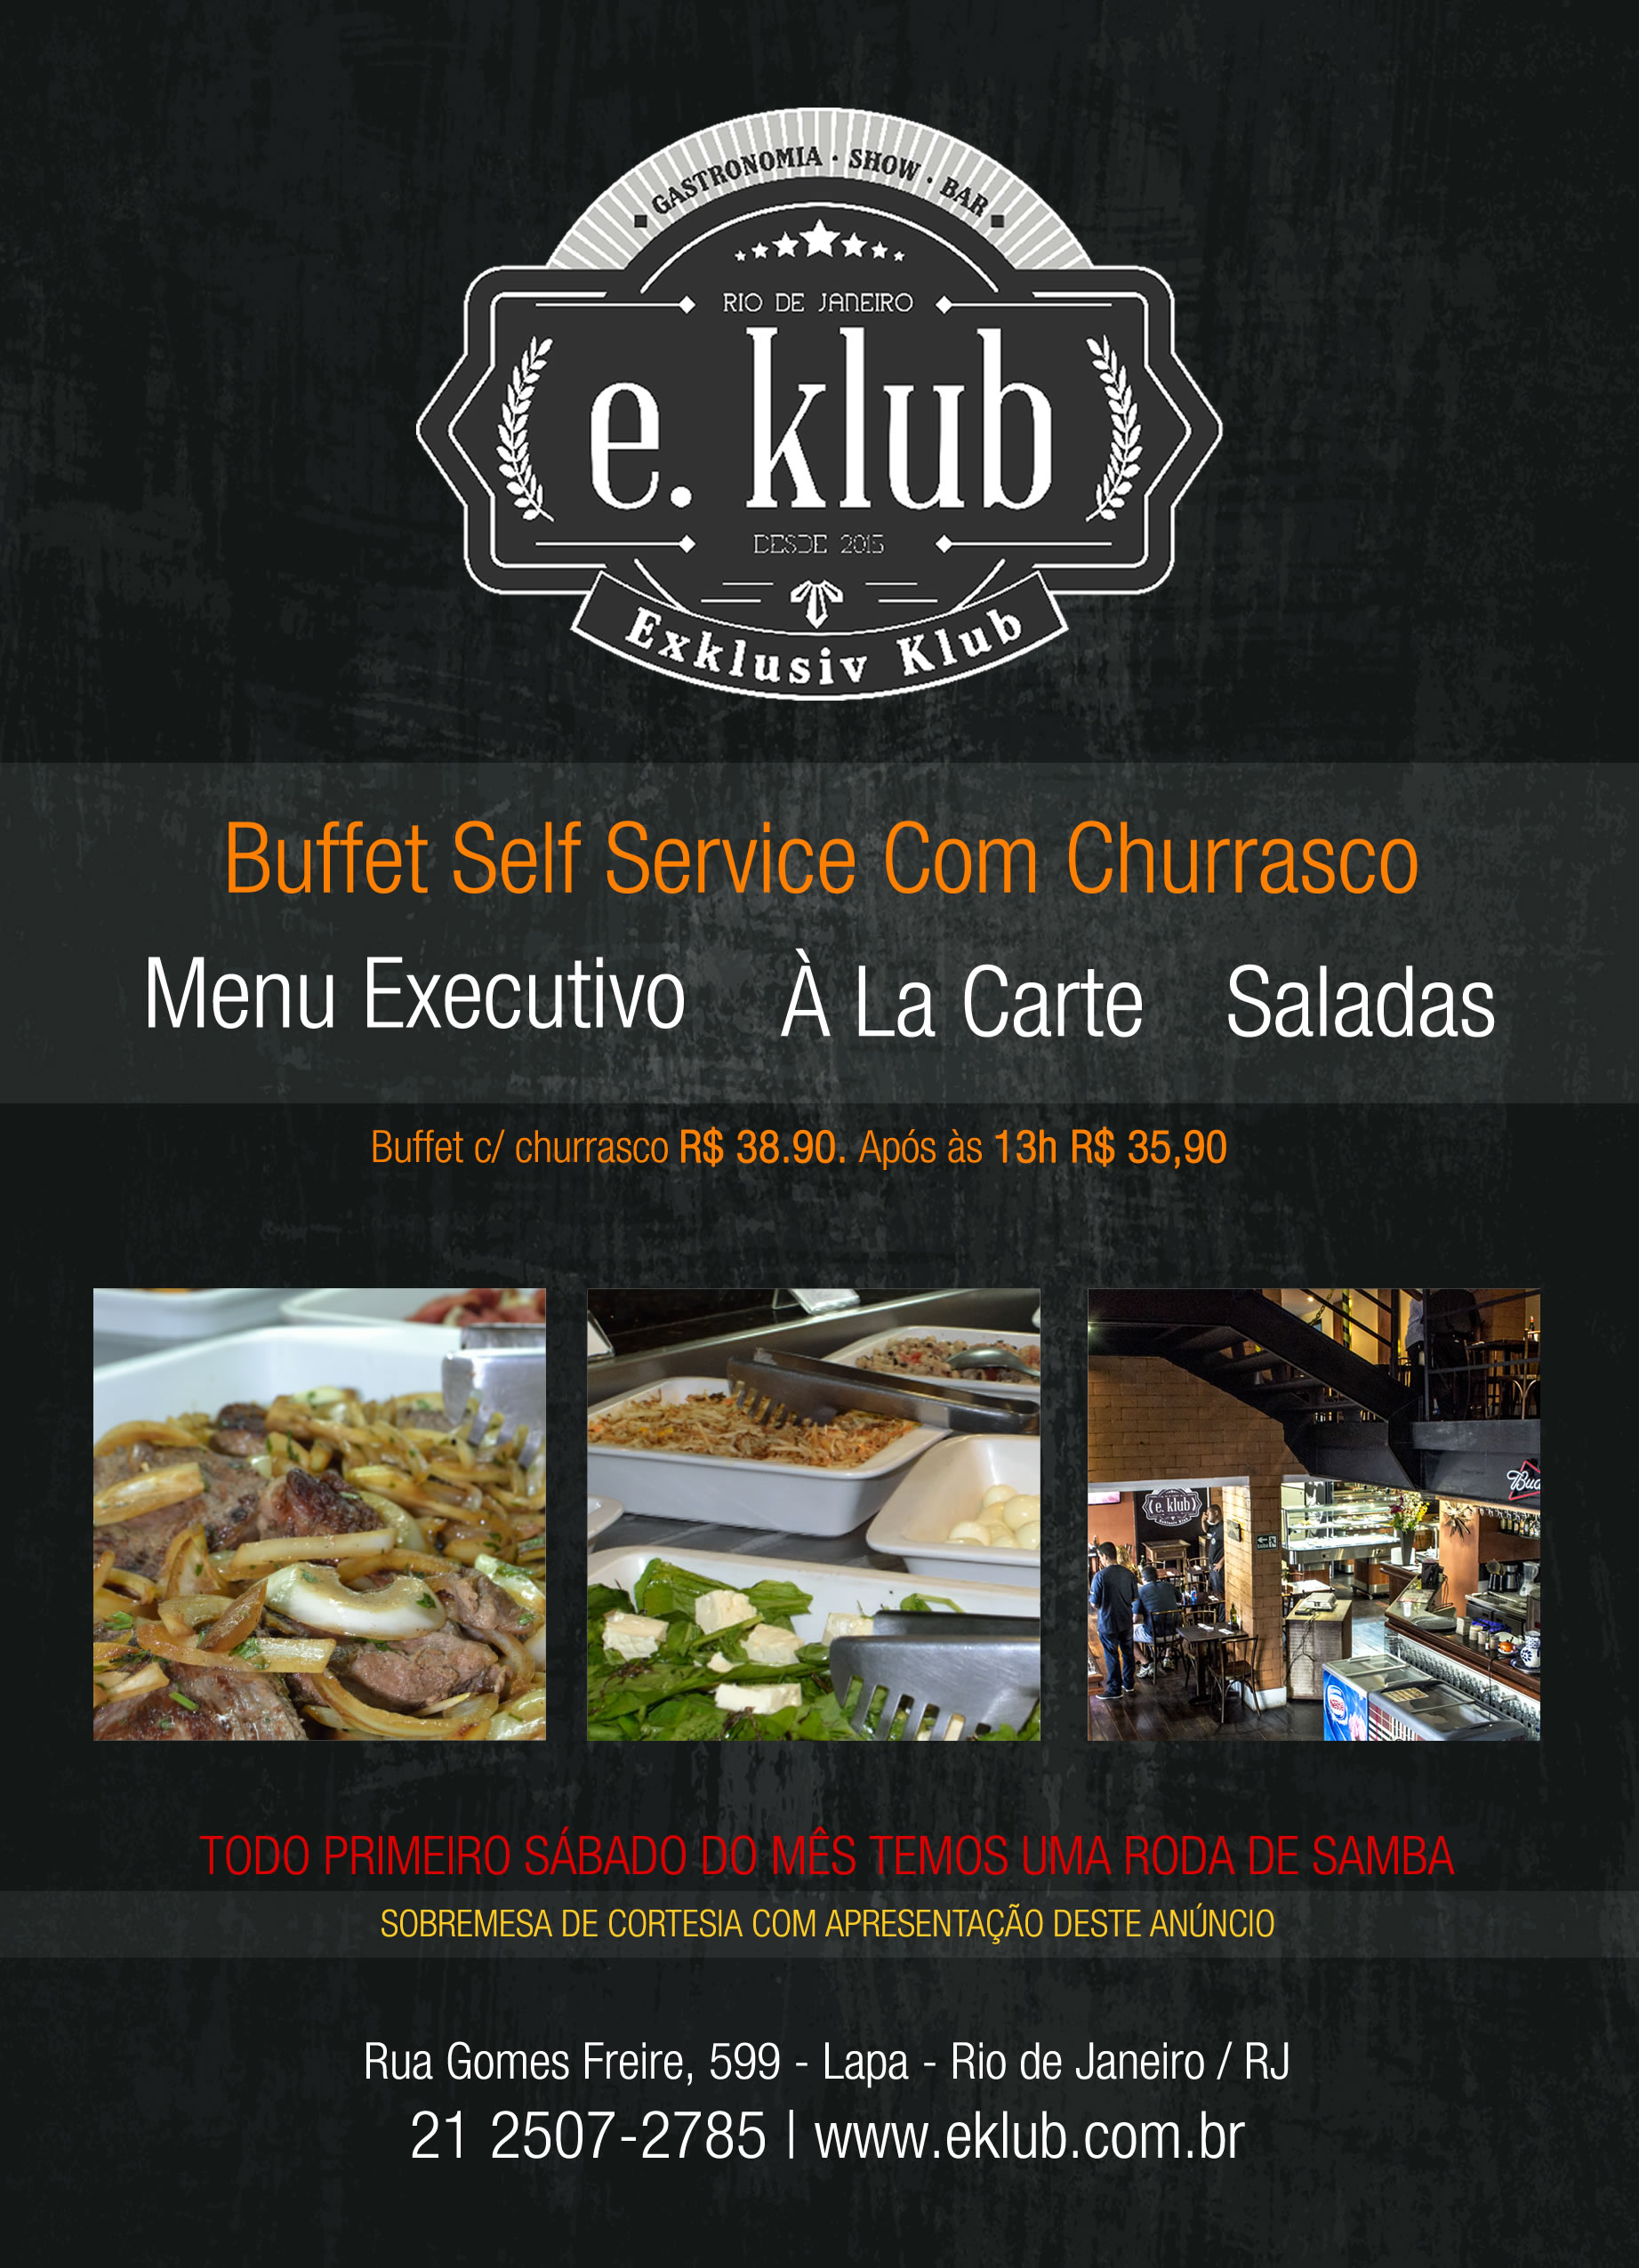 Exklusiv Klub - Folder de Buffet